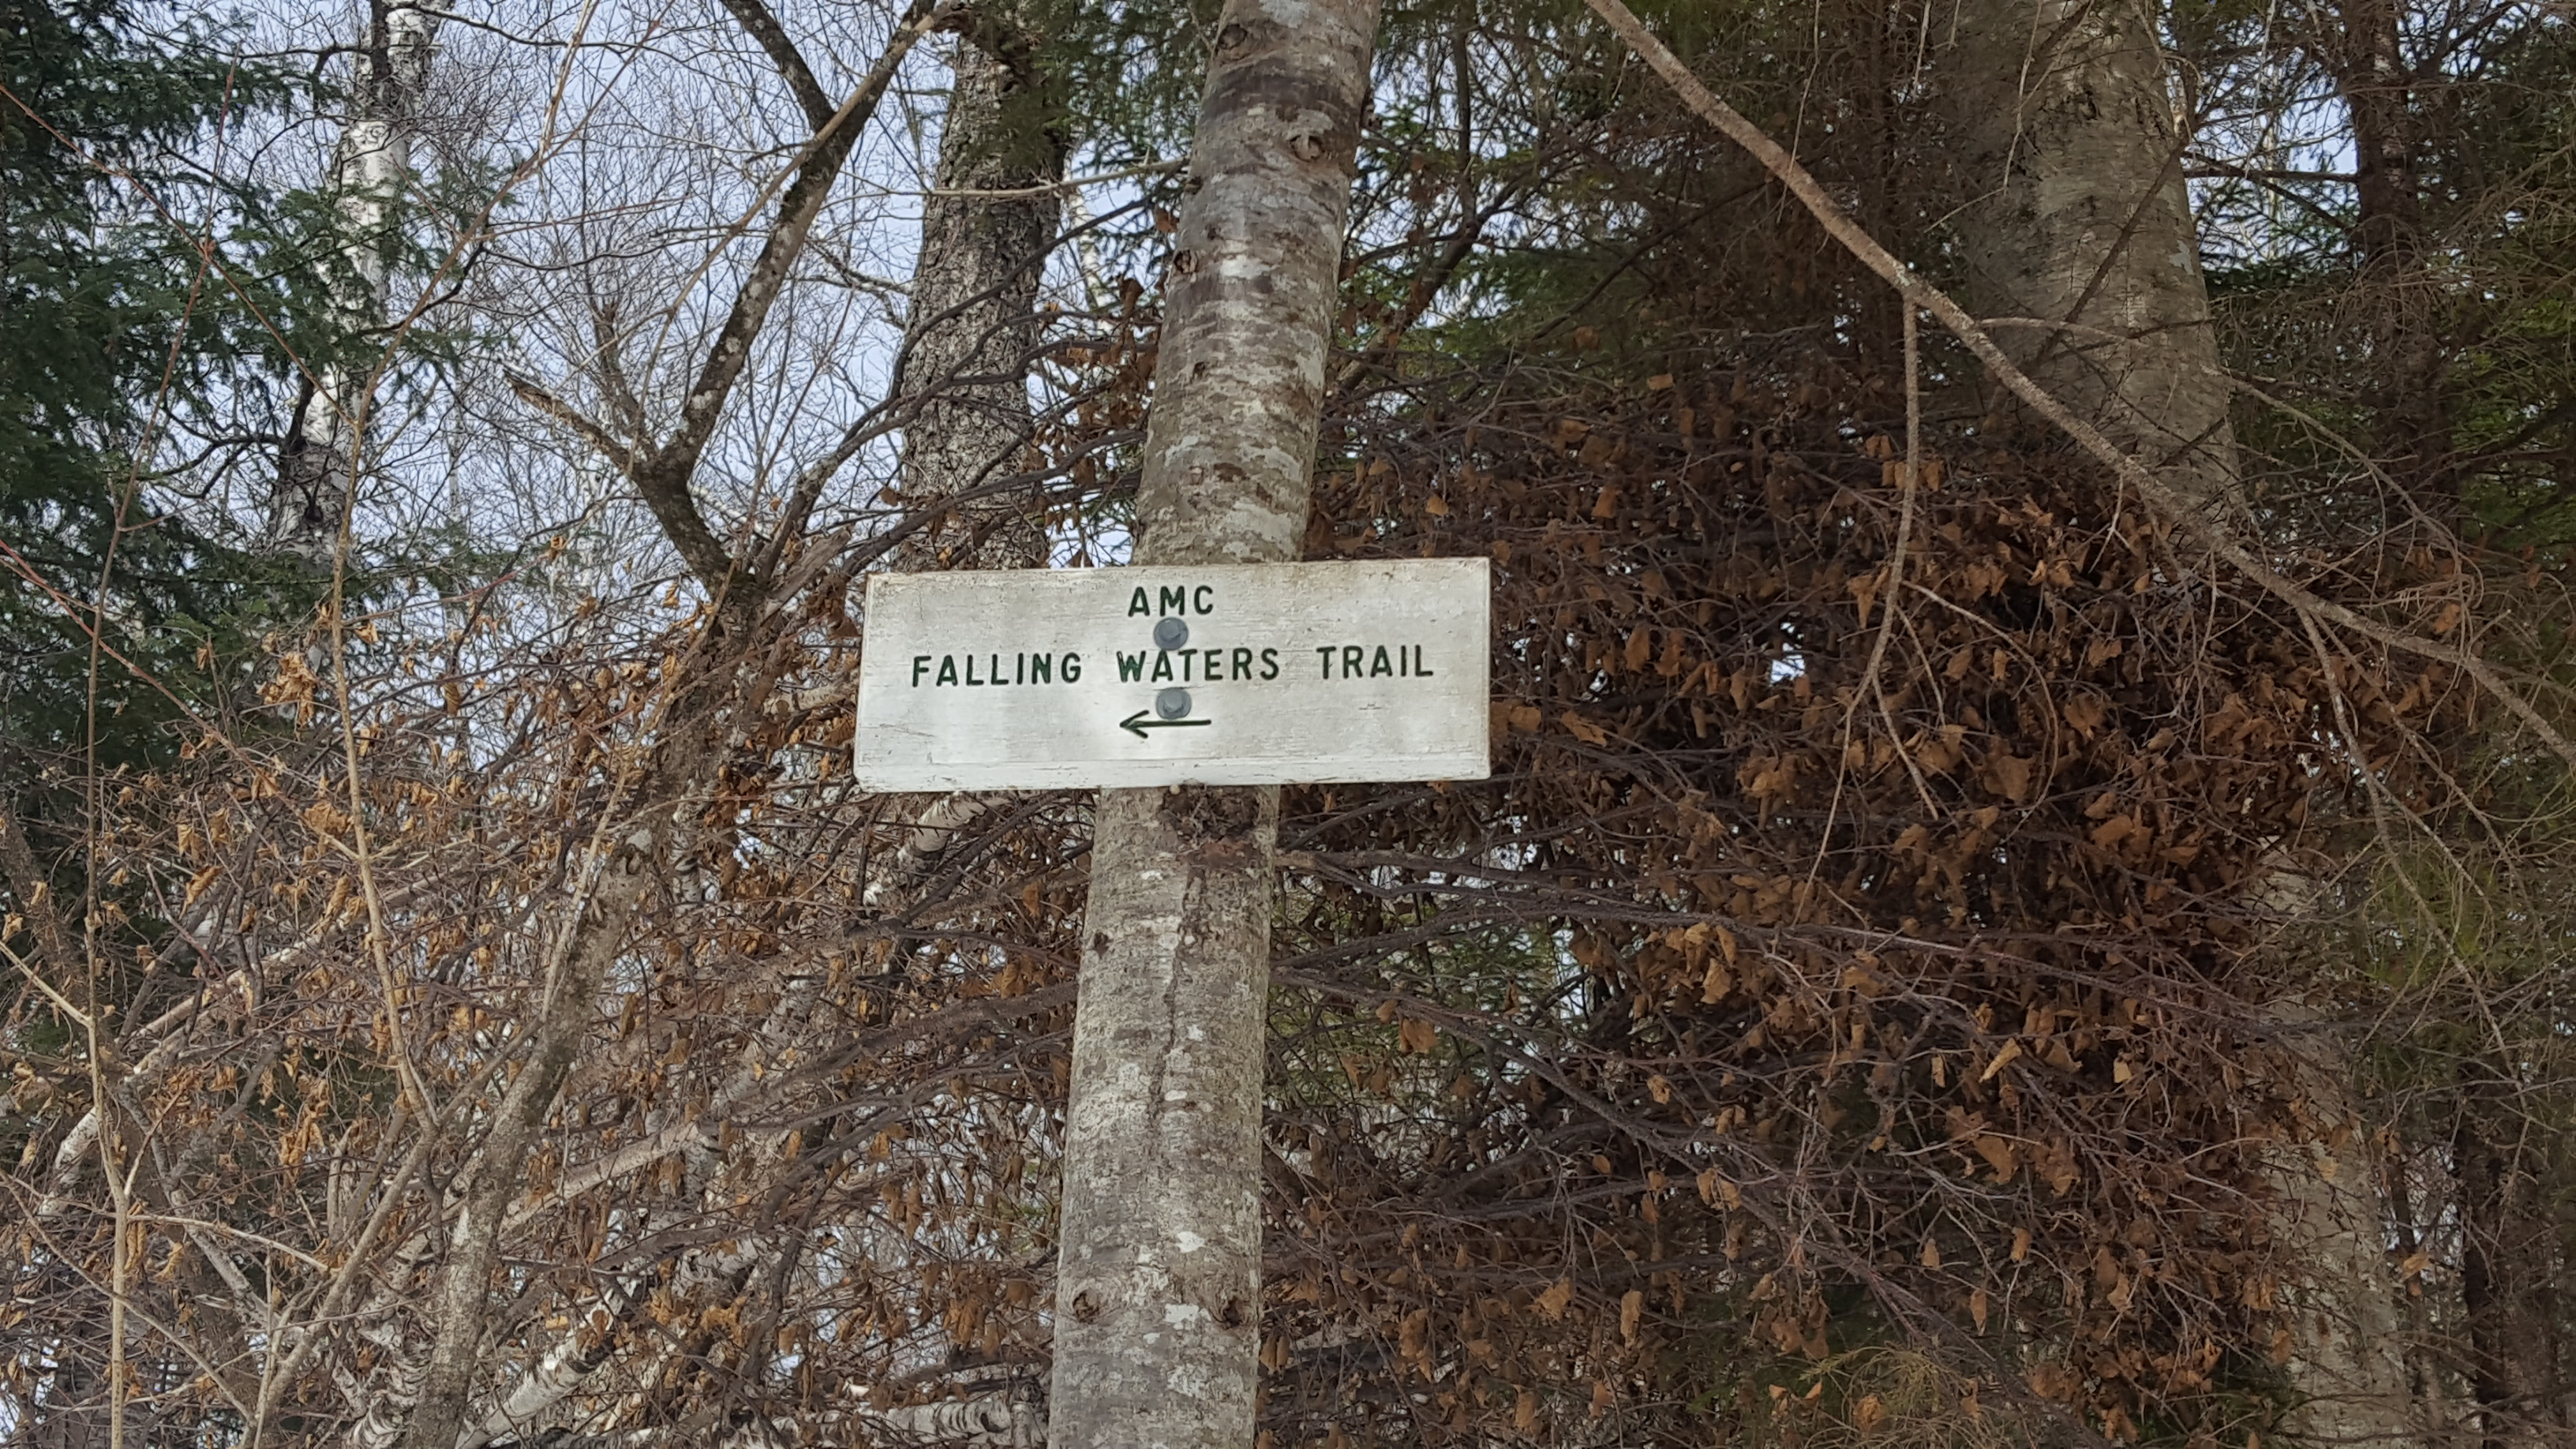 AMC Falling Waters Trail sign.